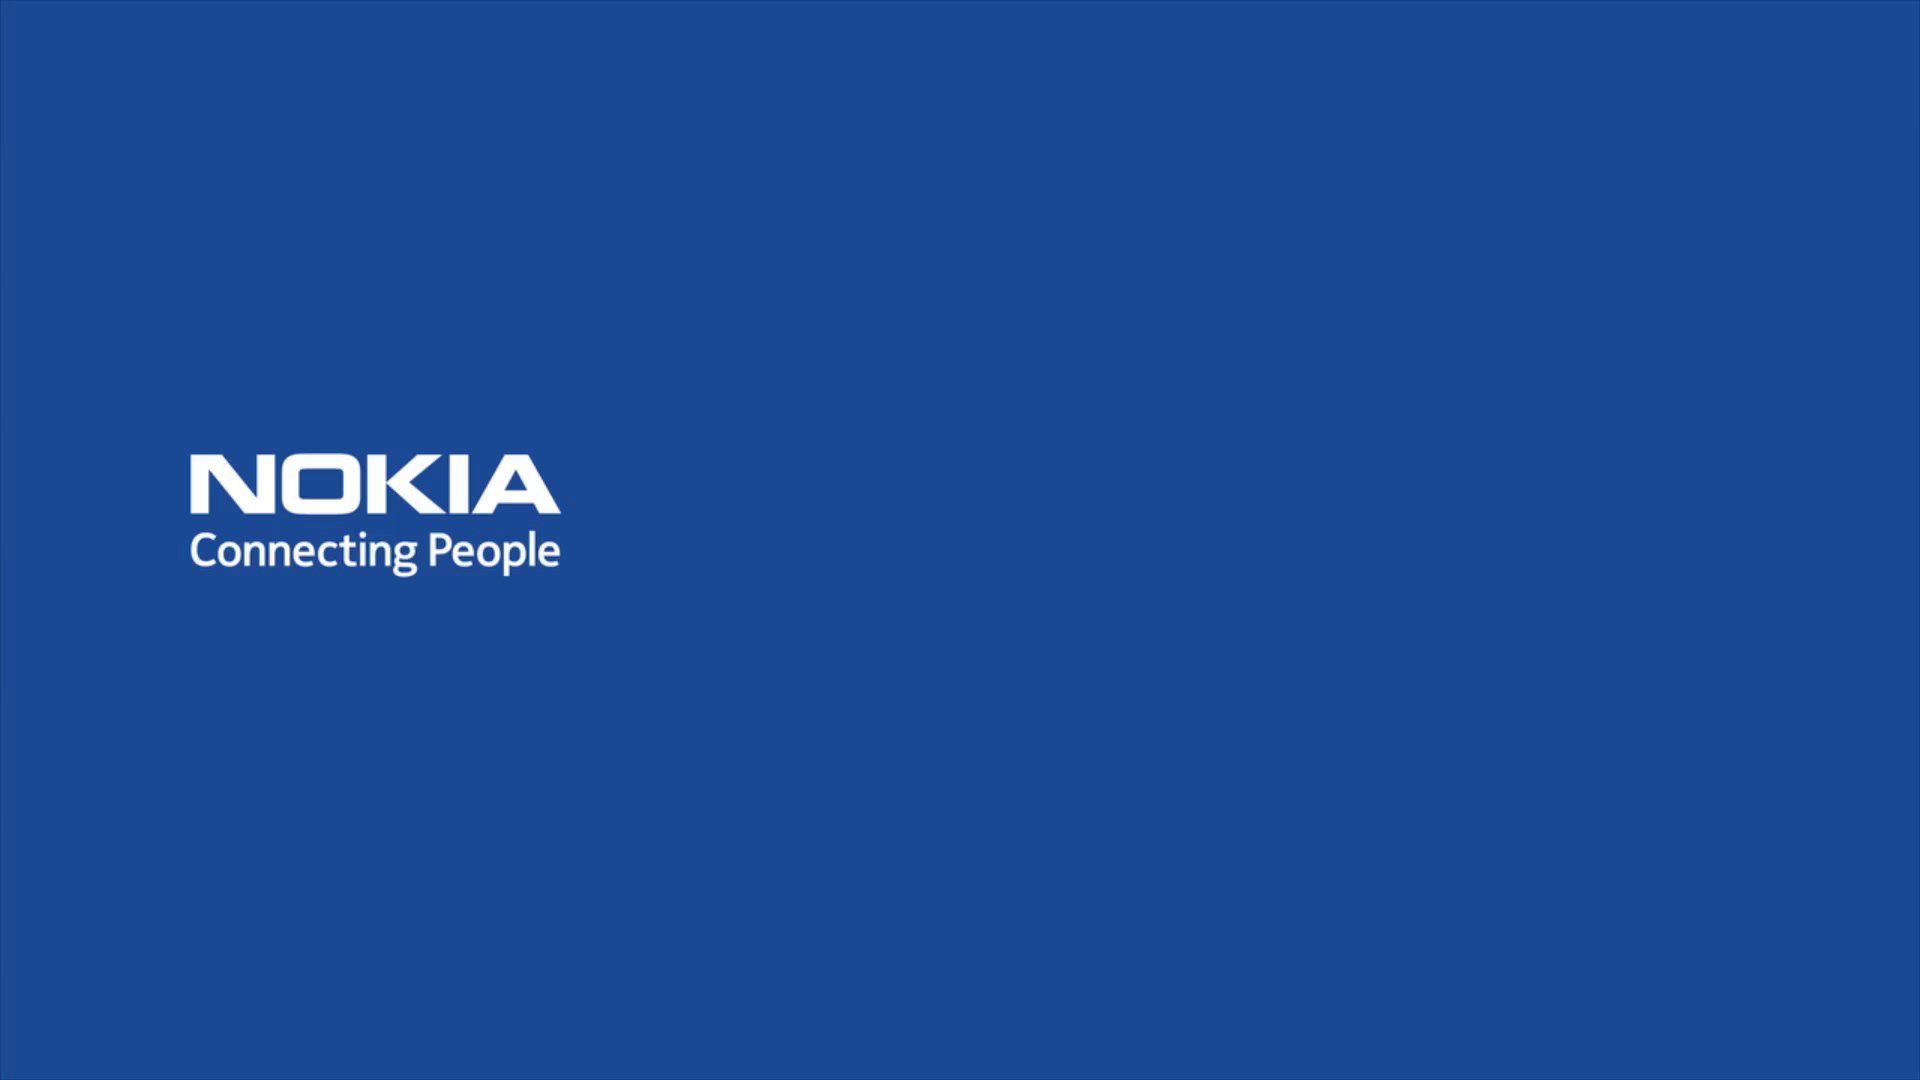 Nokia Wallpaper Logos - WallpaperSafari